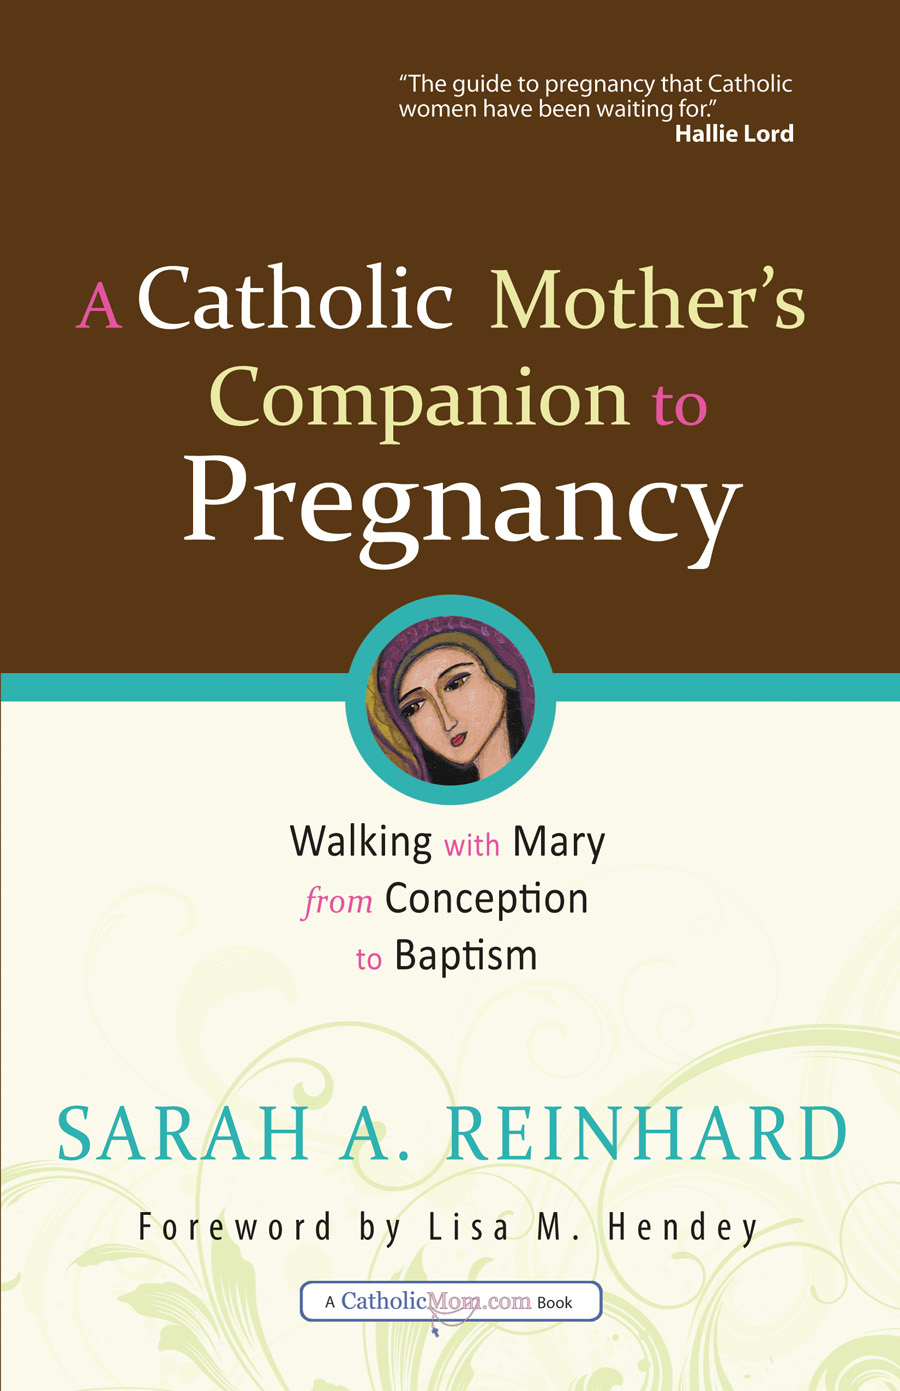 A Catholic Mother's Companion to Pregnancy